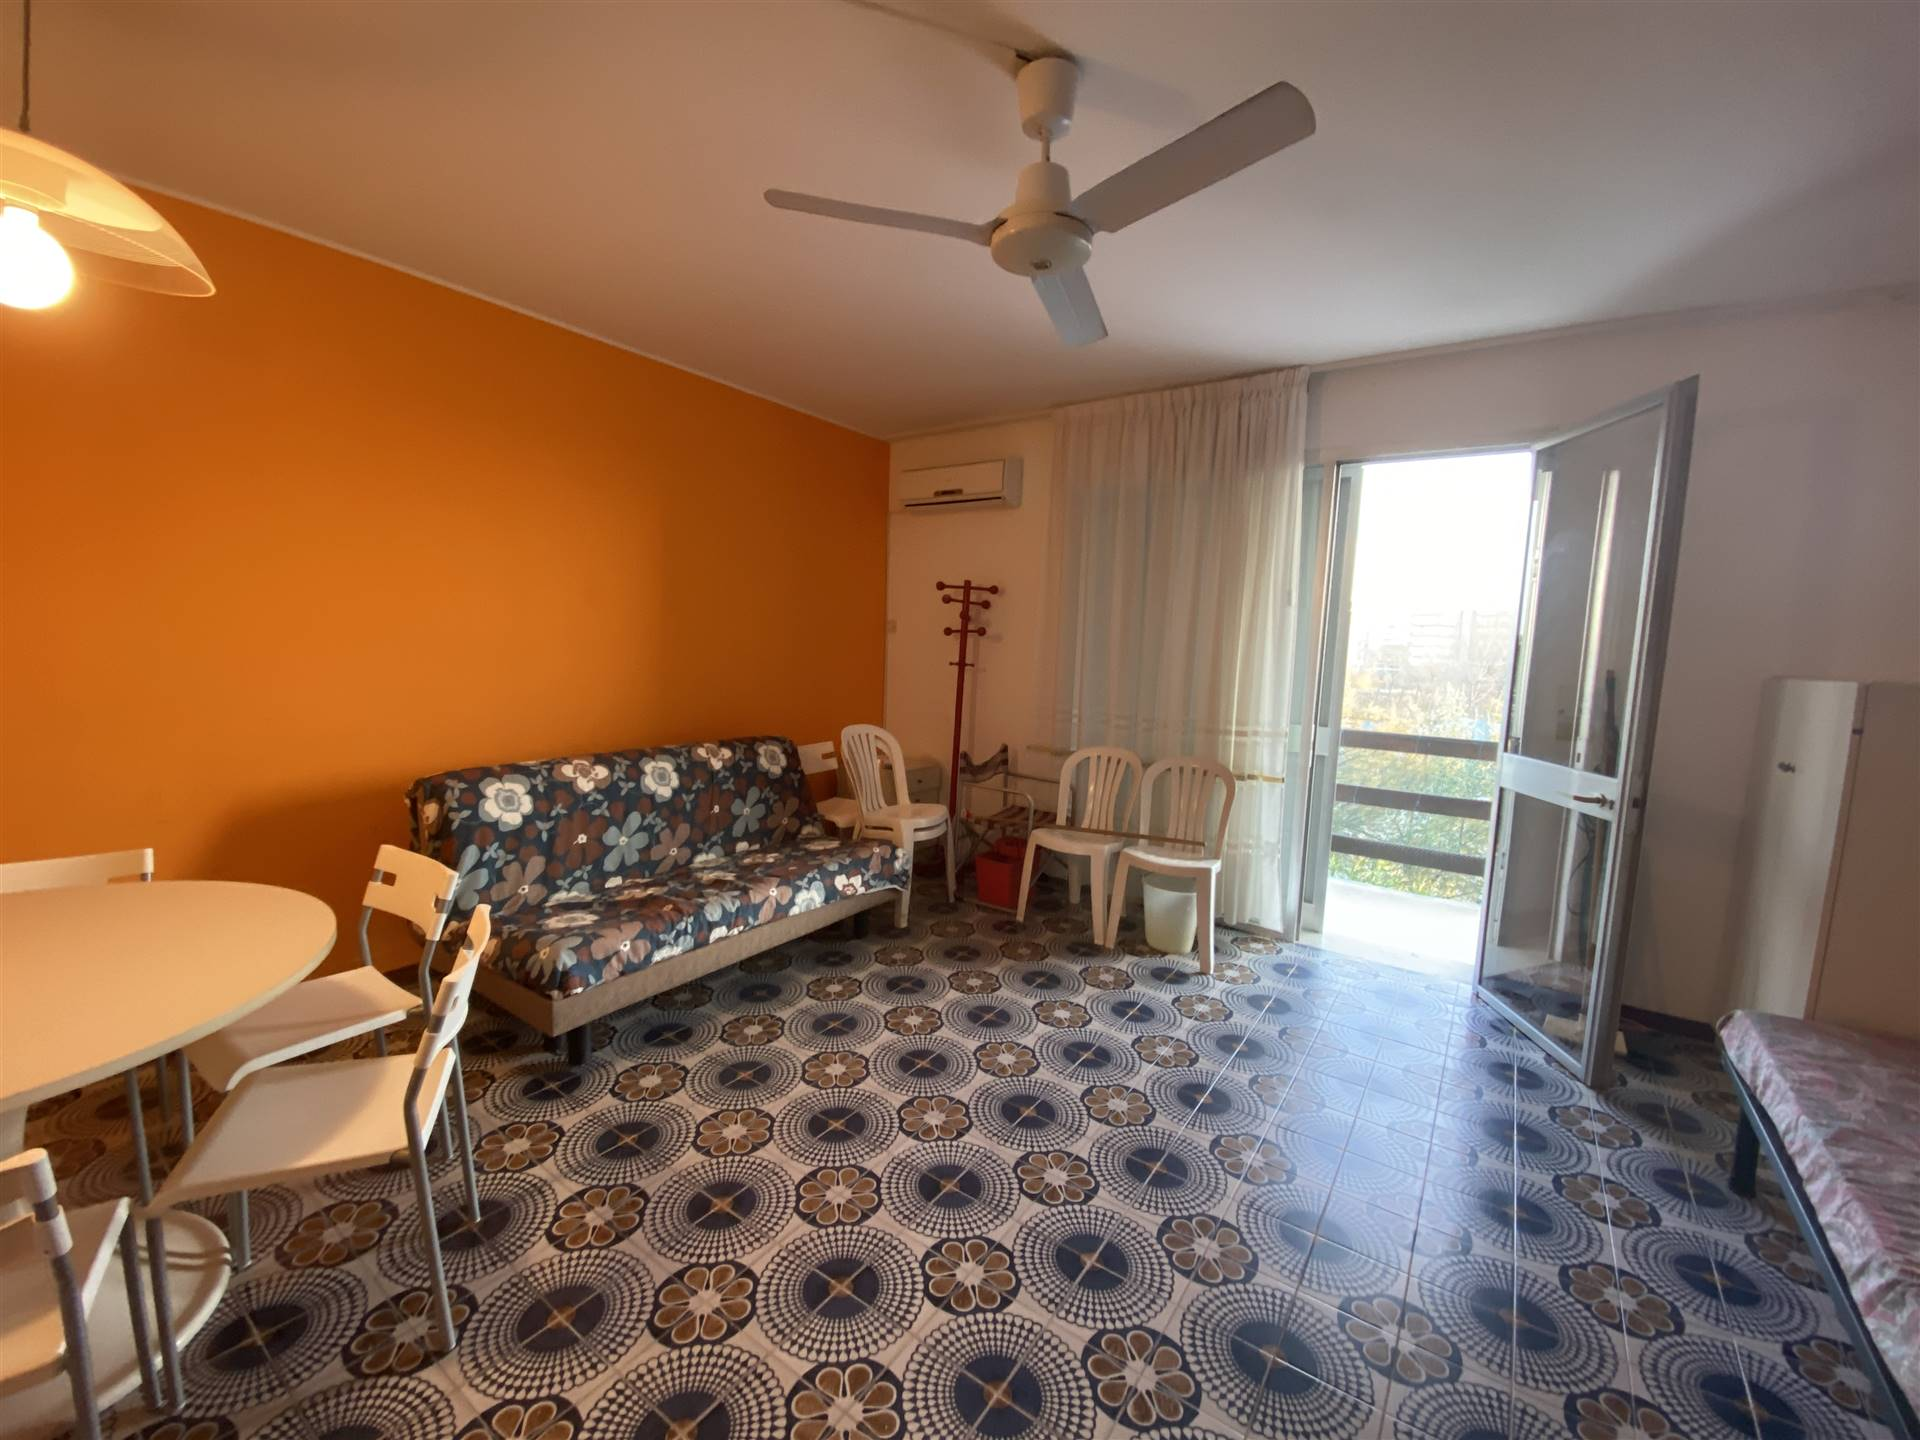 ISOLA VERDE, CHIOGGIA, Apartment for sale of 50 Sq. mt., Energetic class: G, placed at 2°, composed by: 3 Rooms, Separate kitchen, , 2 Bedrooms, 1